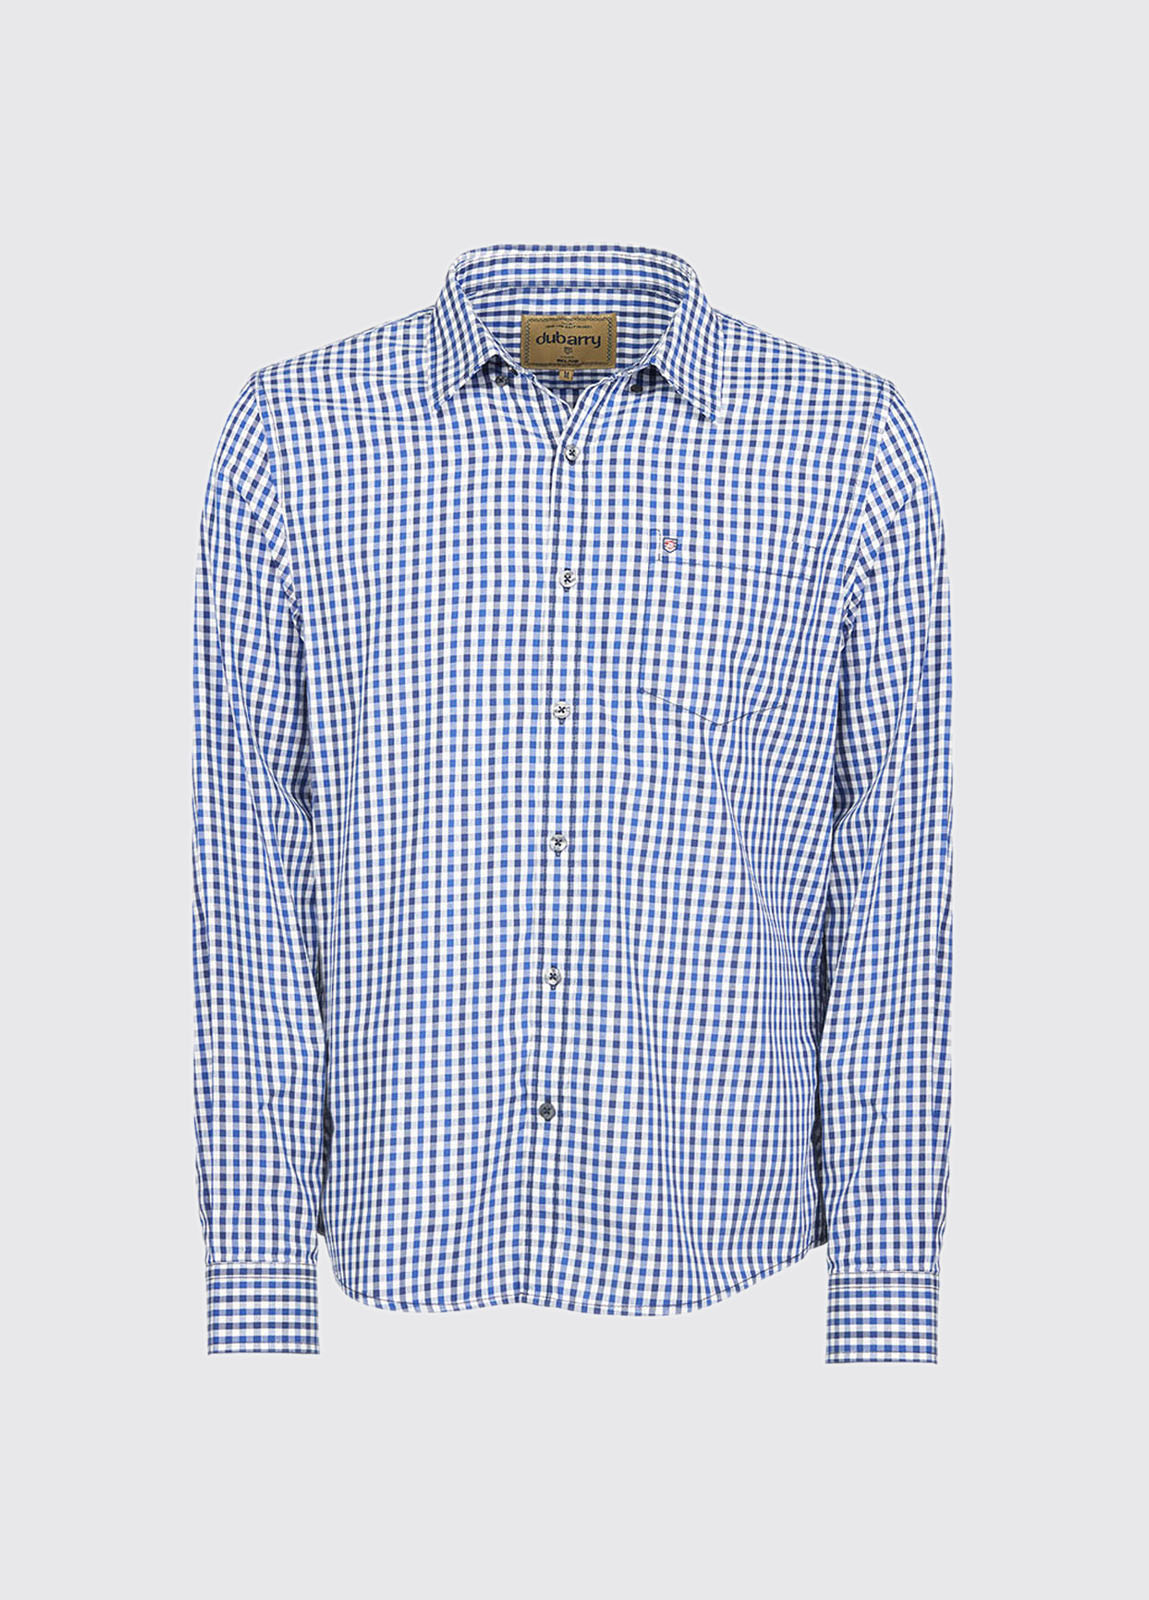 Allenwood Men's Shirt - Blue Multi